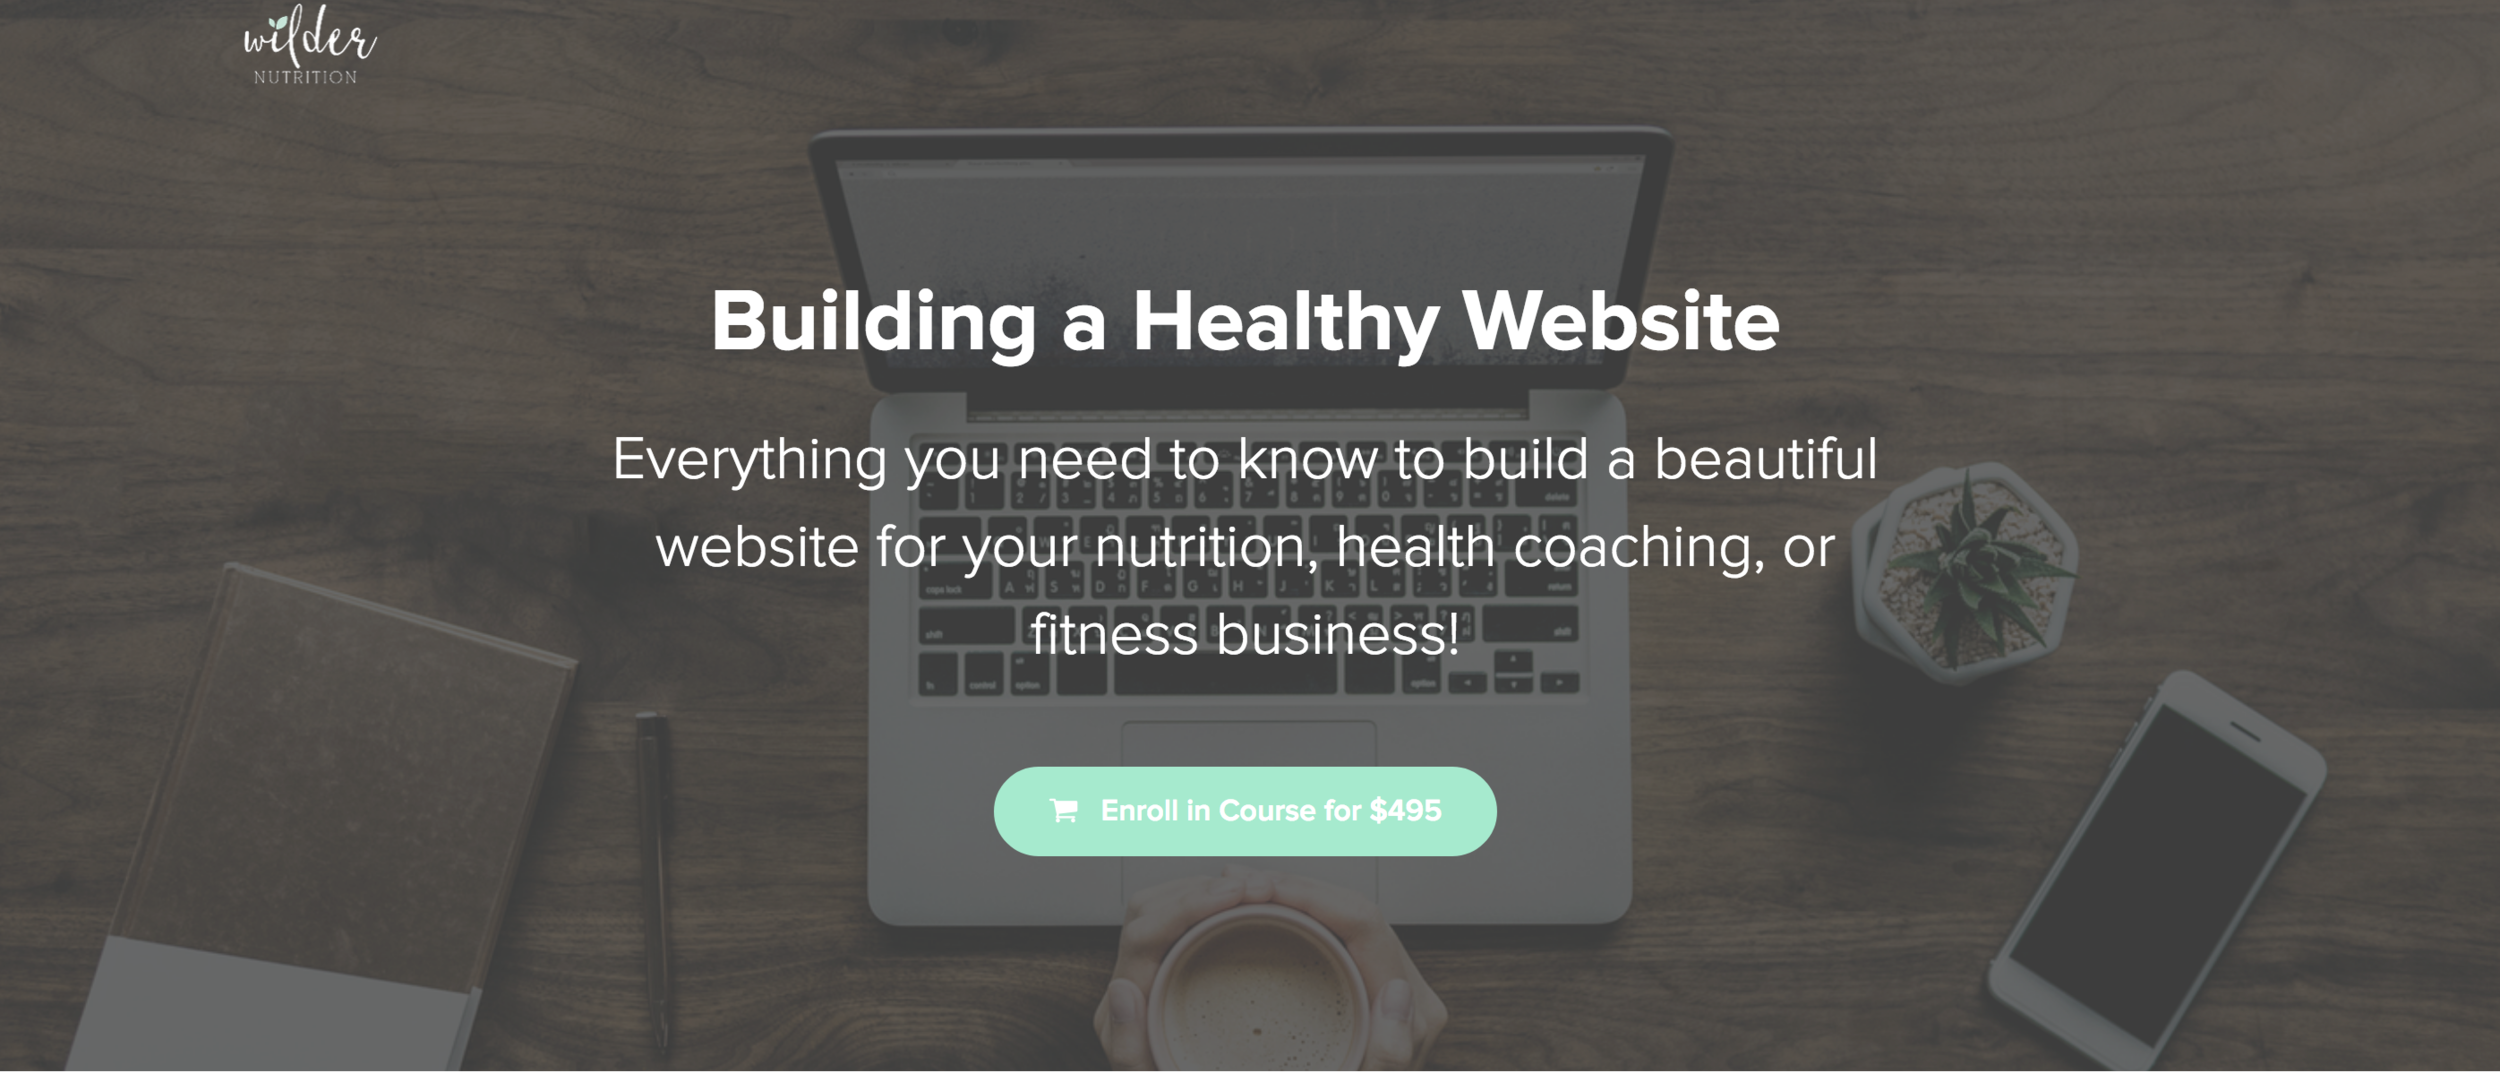 websites for nutritionists. NTP website. Nutritional therapy practitioner website. How to build a website.